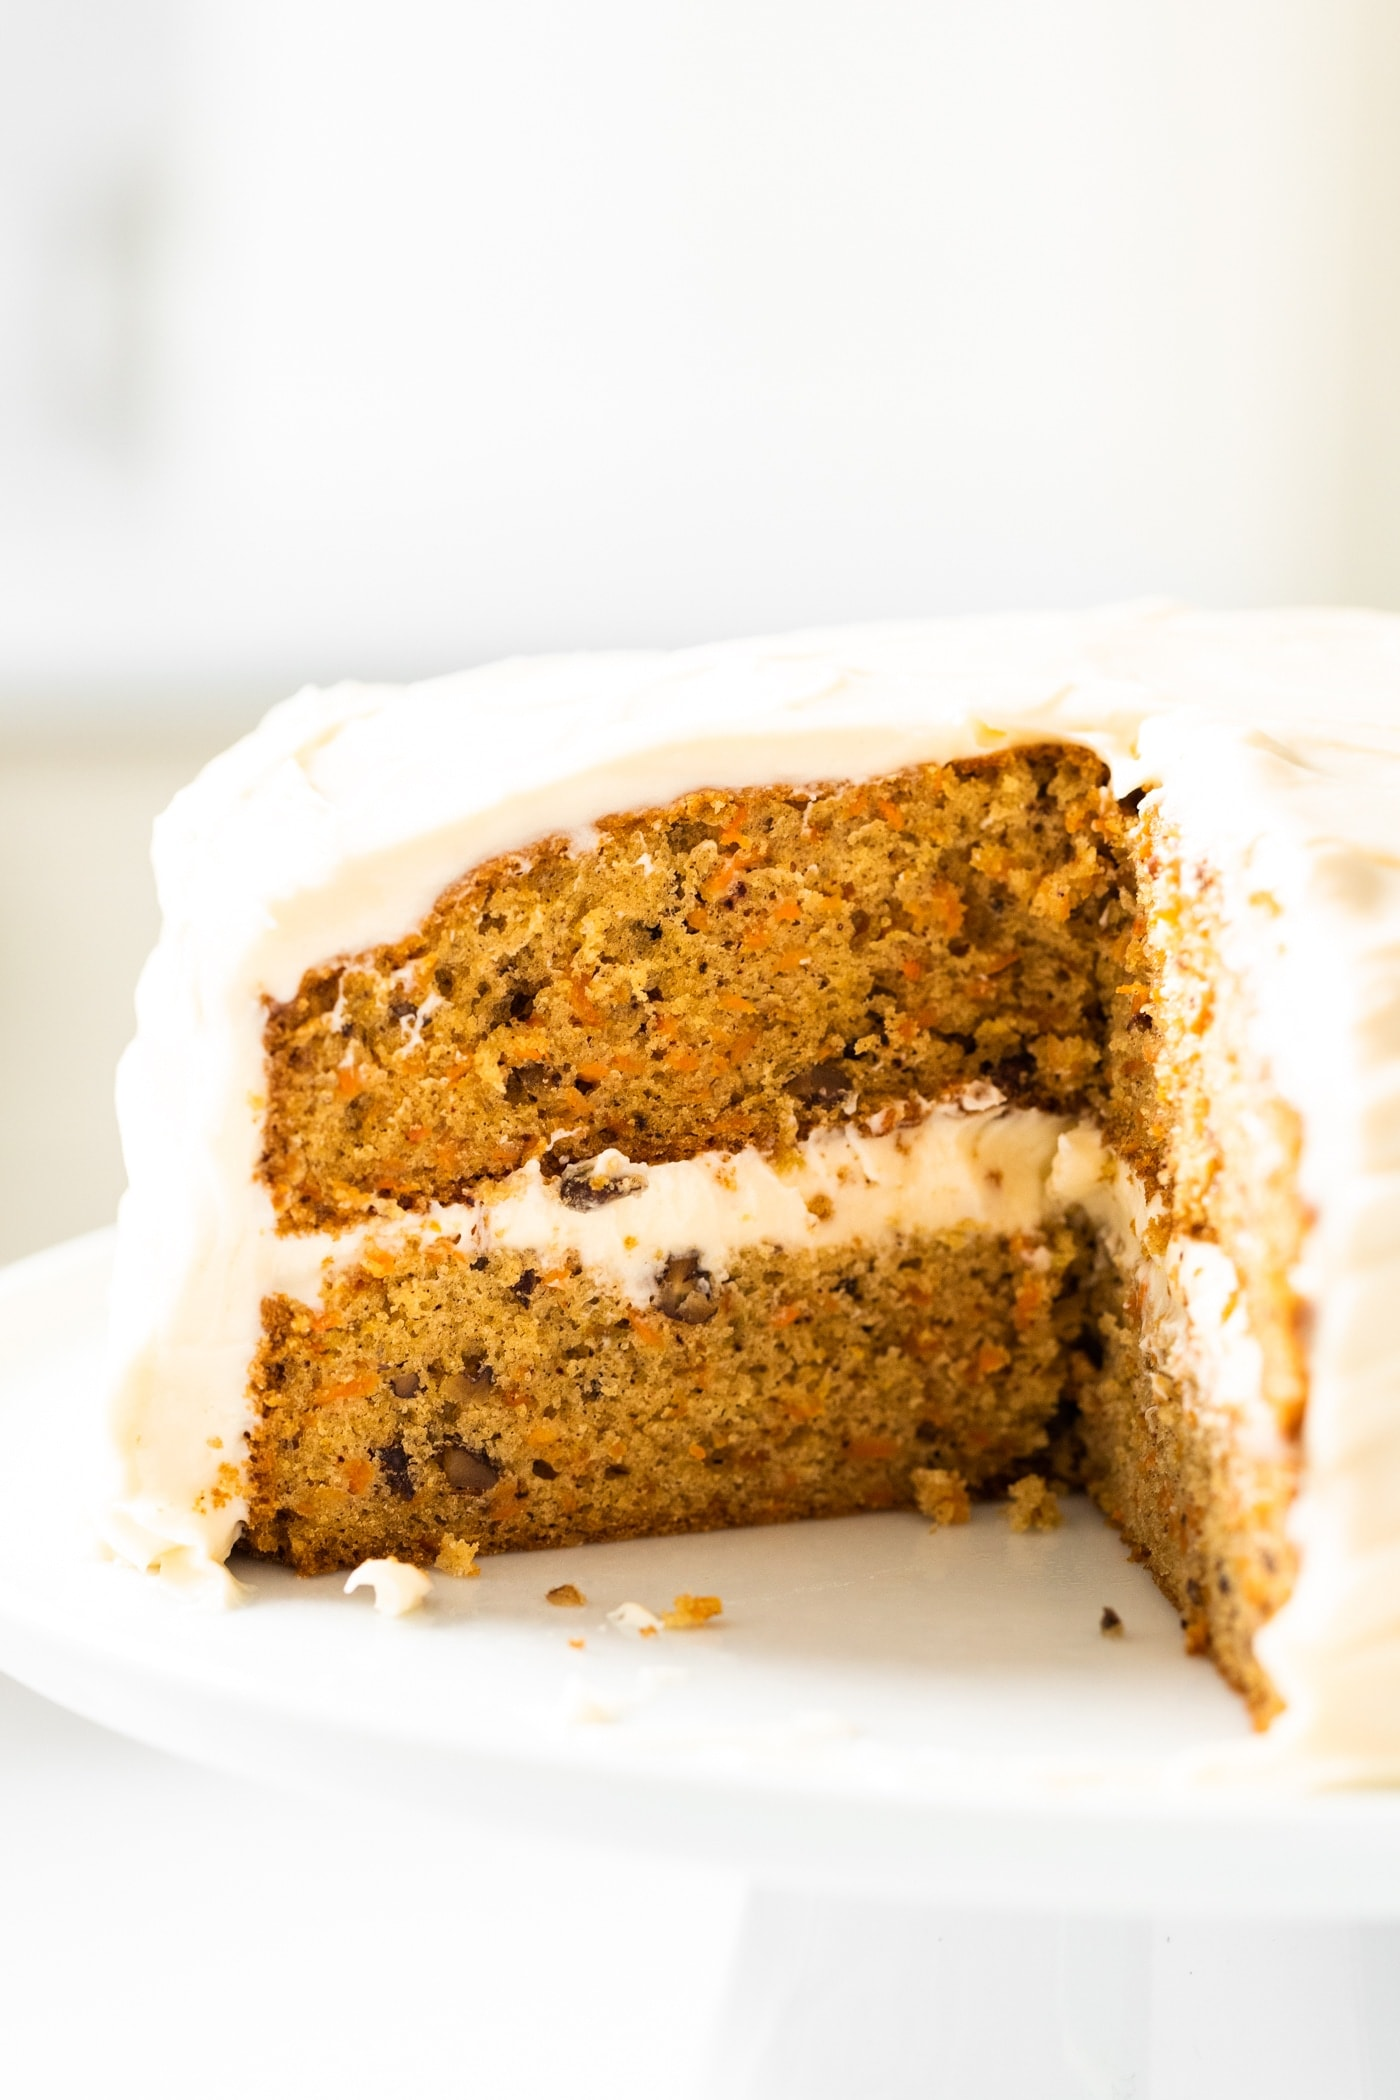 Close up view of inside of orange colored carrot cake topped with cream cheese frosting sitting on white cake plate with white background